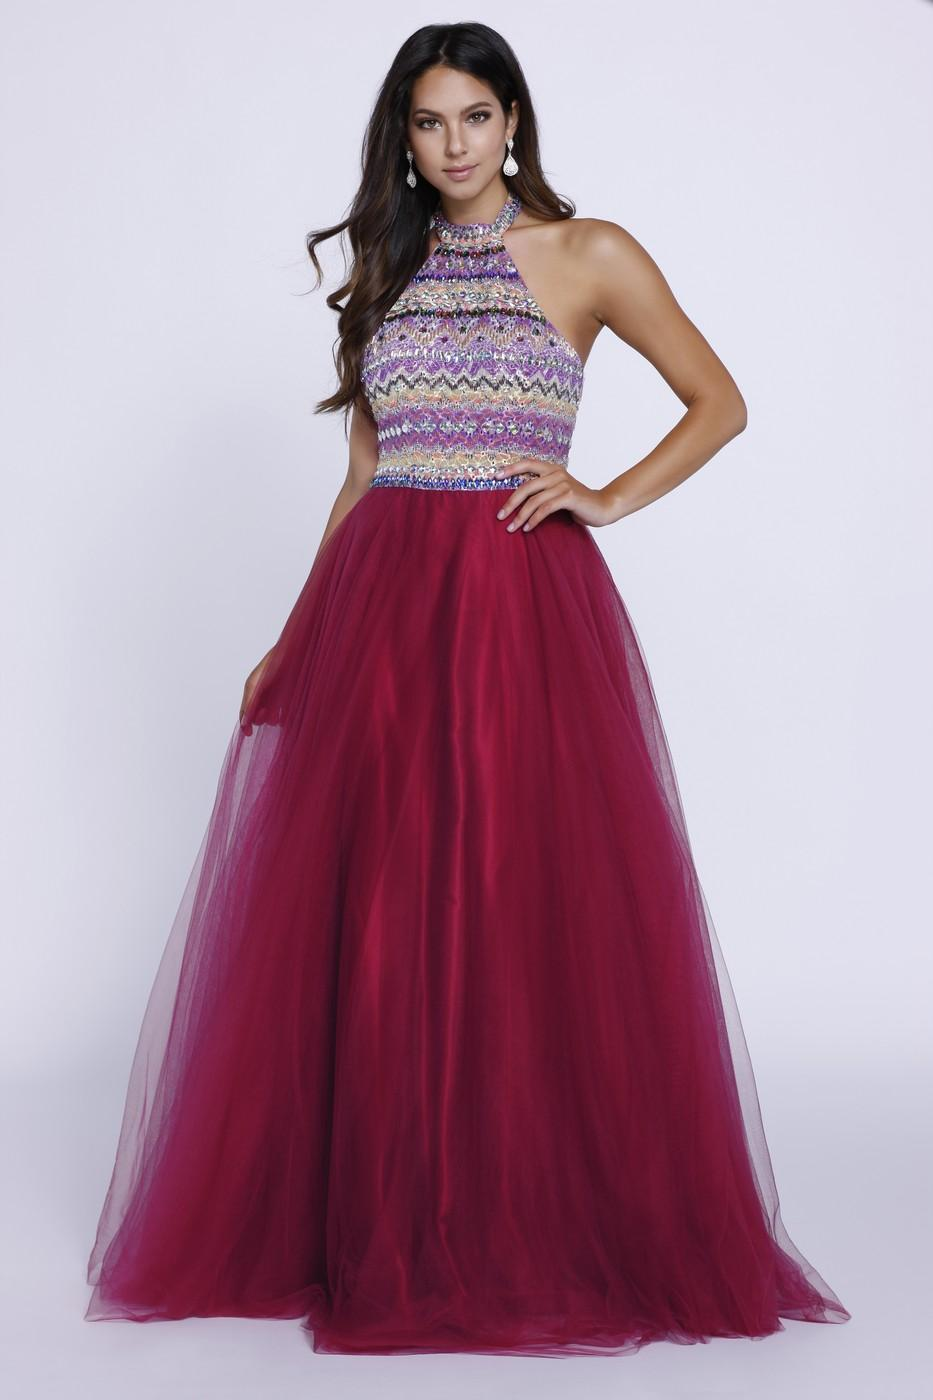 A-LINE HALTER BALL GOWN WITH SLEEVELESS EMBROIDERED TOP # 8265 BY NARIANNA